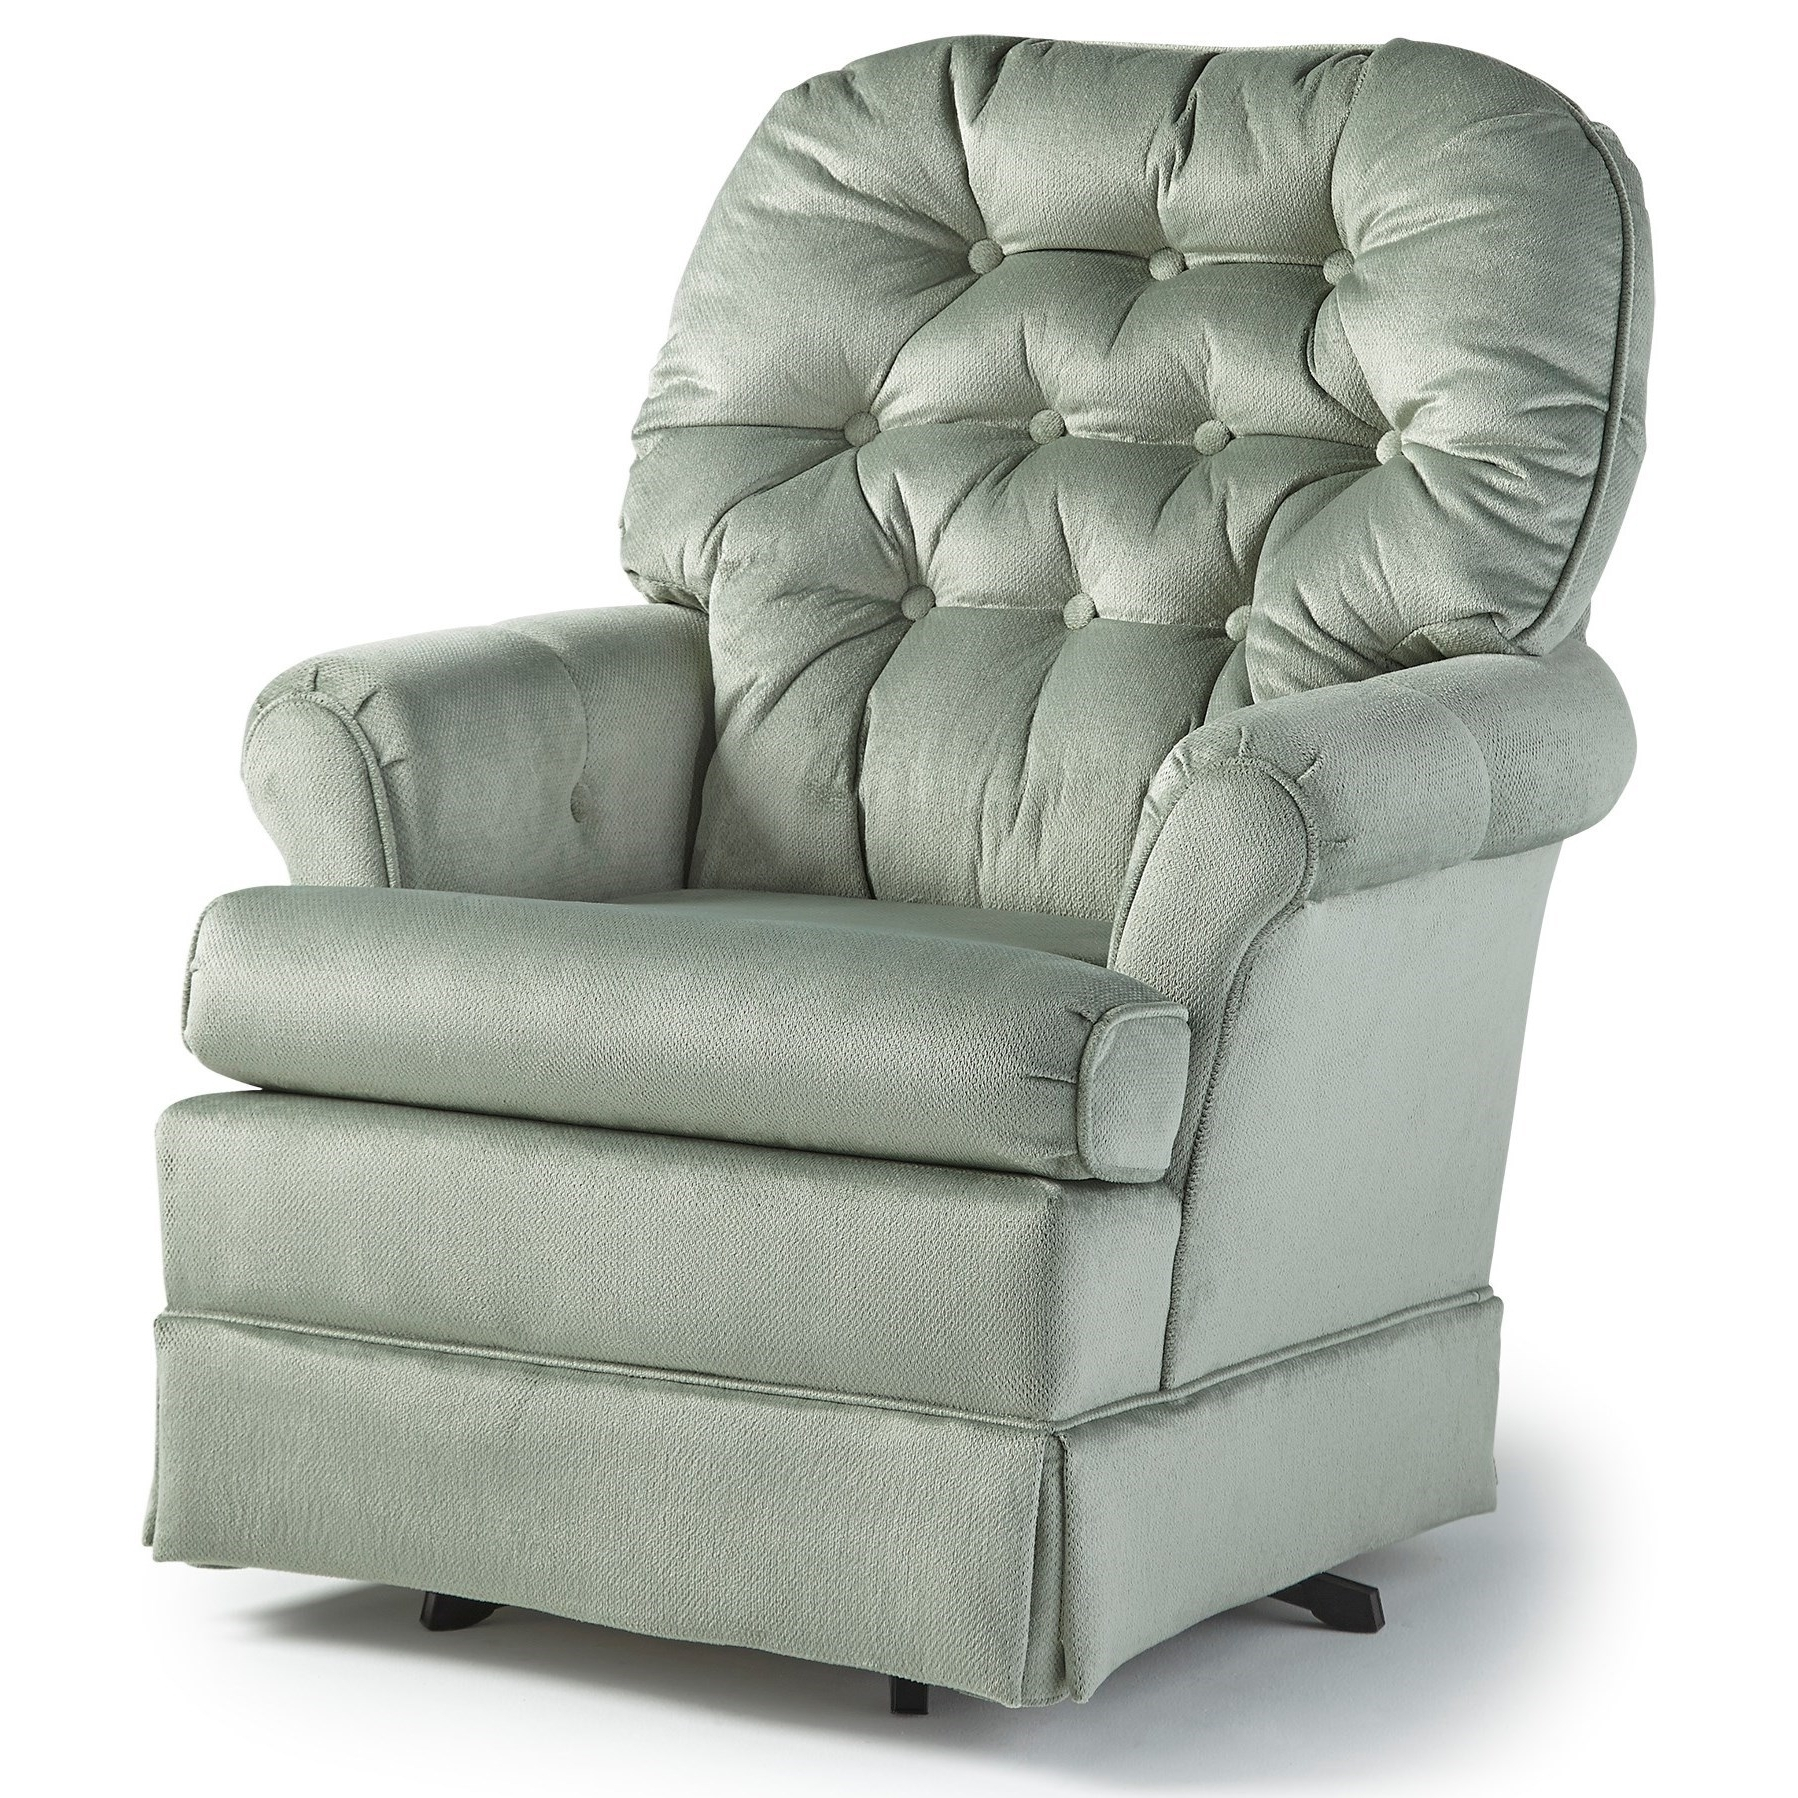 Widely Used Swivel Rocking Chairs Throughout Best Home Furnishings Swivel Glide Chairs 1559 Marla Swivel Rocker (View 5 of 15)